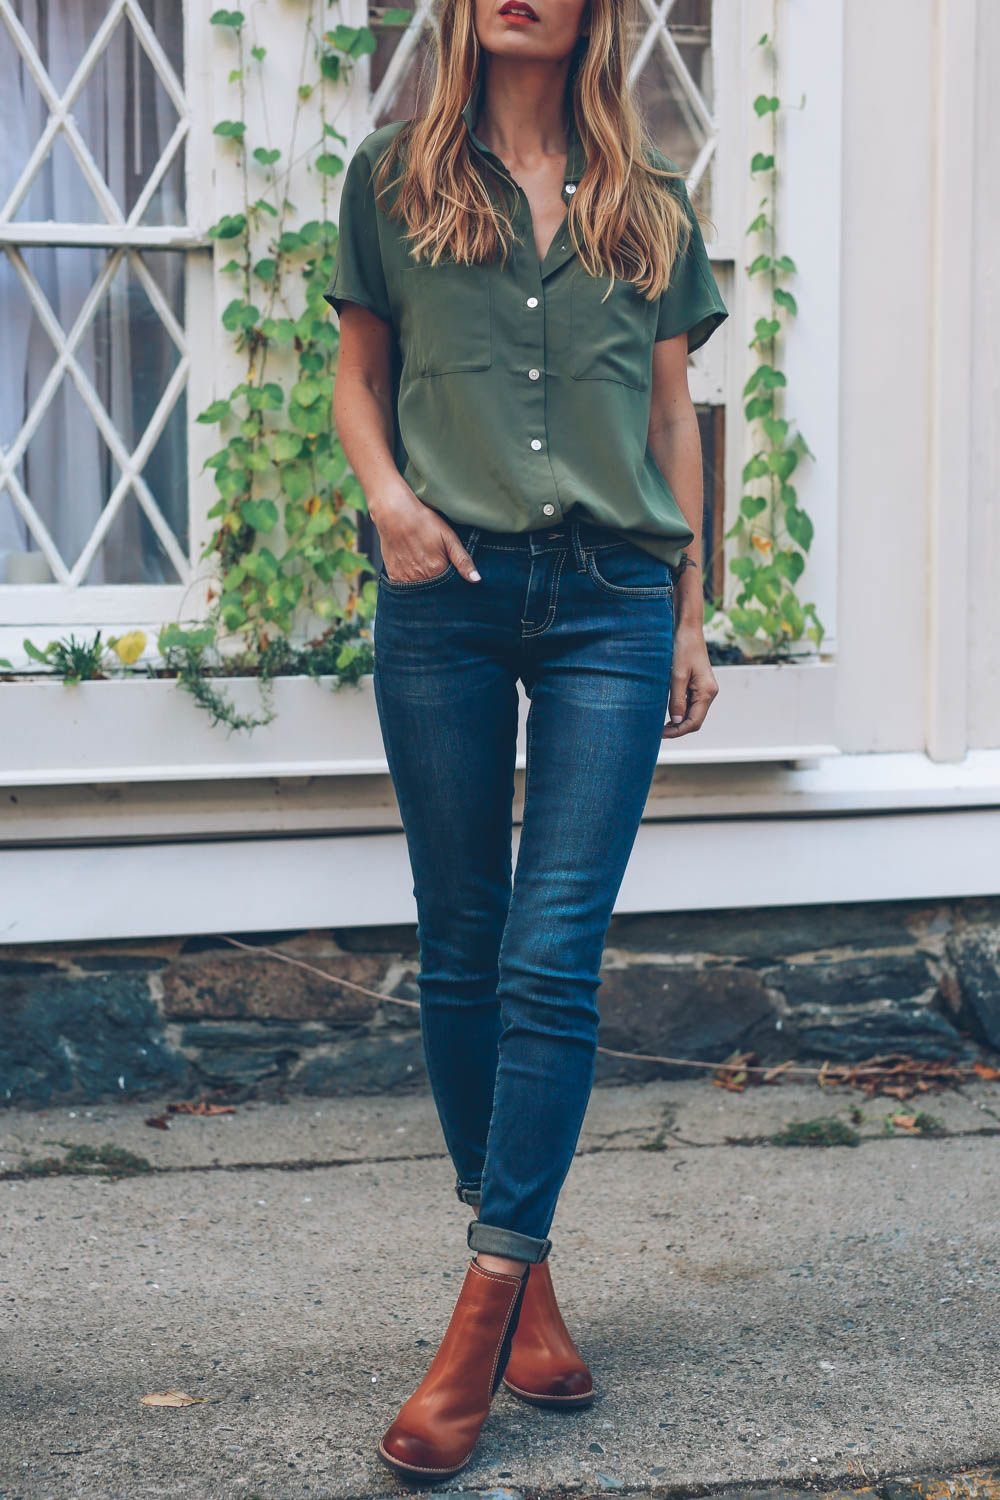 Skinny Jeans Two Ways | Fashion, Style, Spring outfits